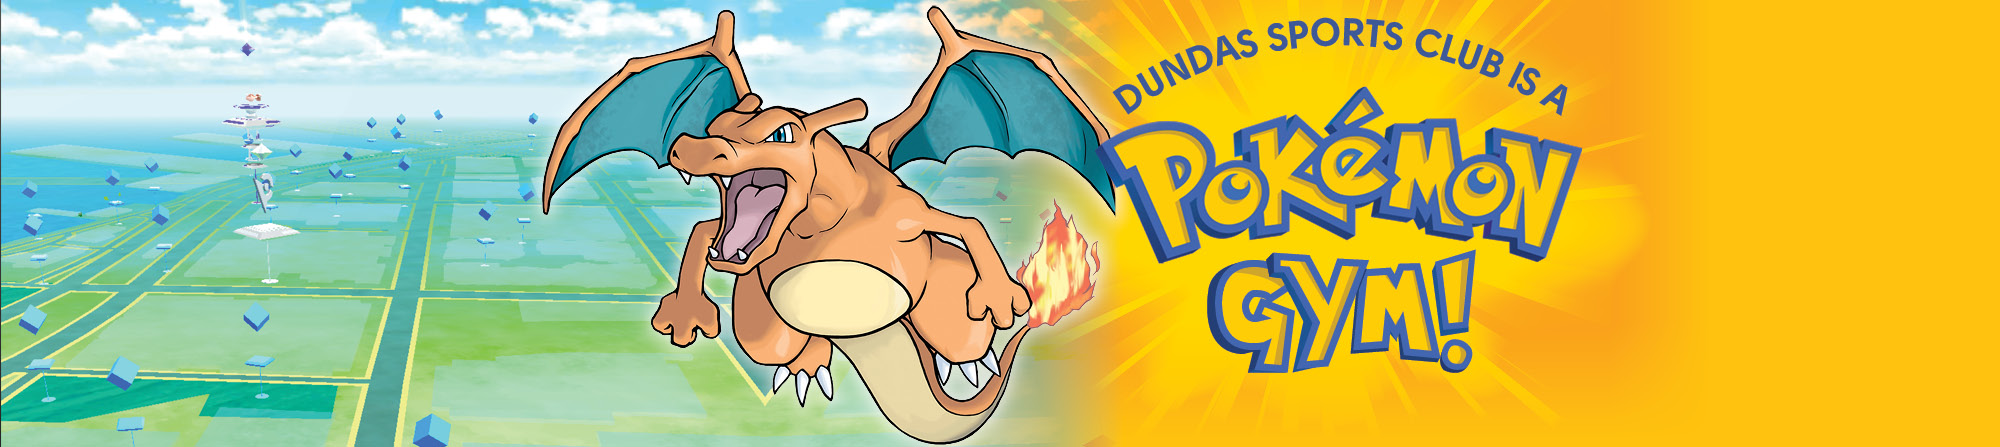 Dundas-Pokemon-Gym-Home-Page-Slider-Cash-Jackpot